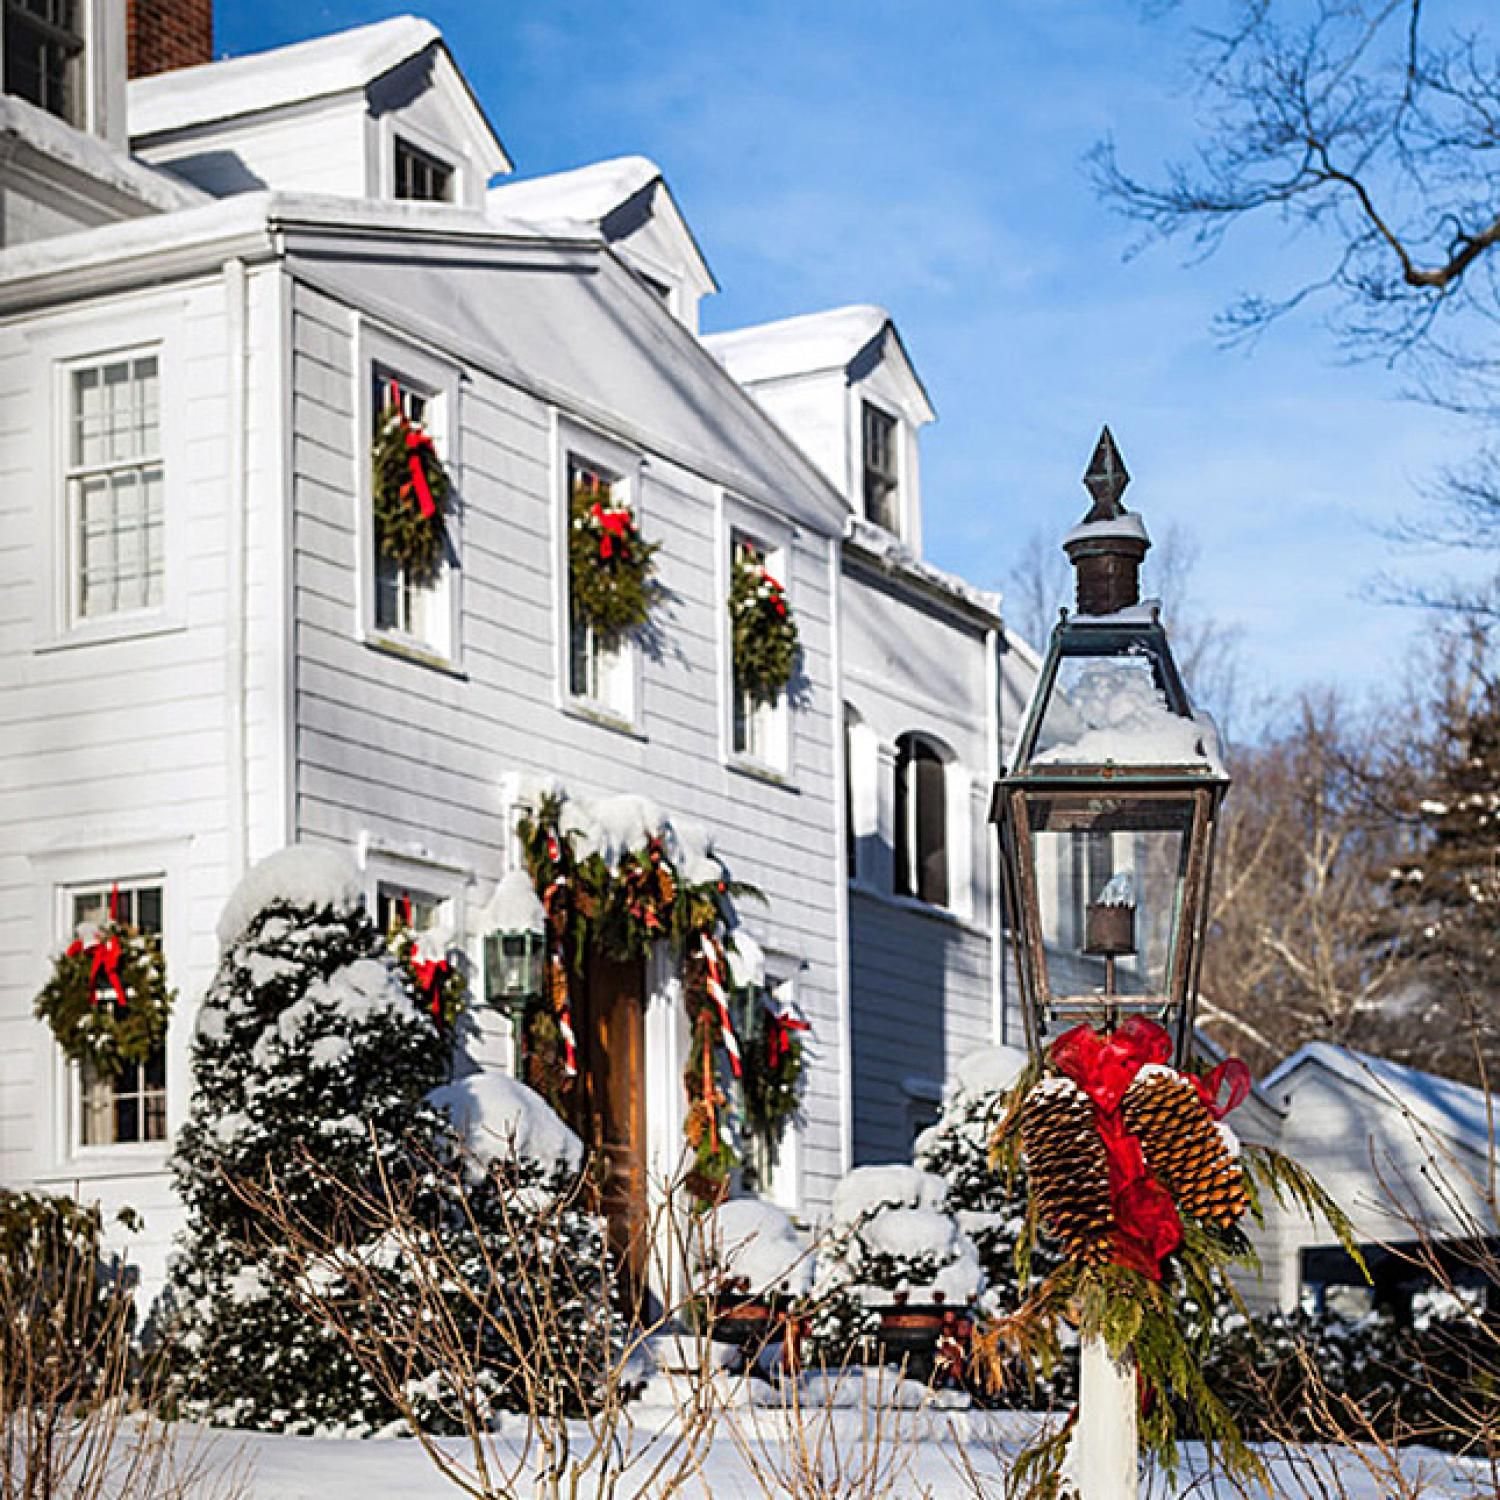 Christmas In A New England Clapboard